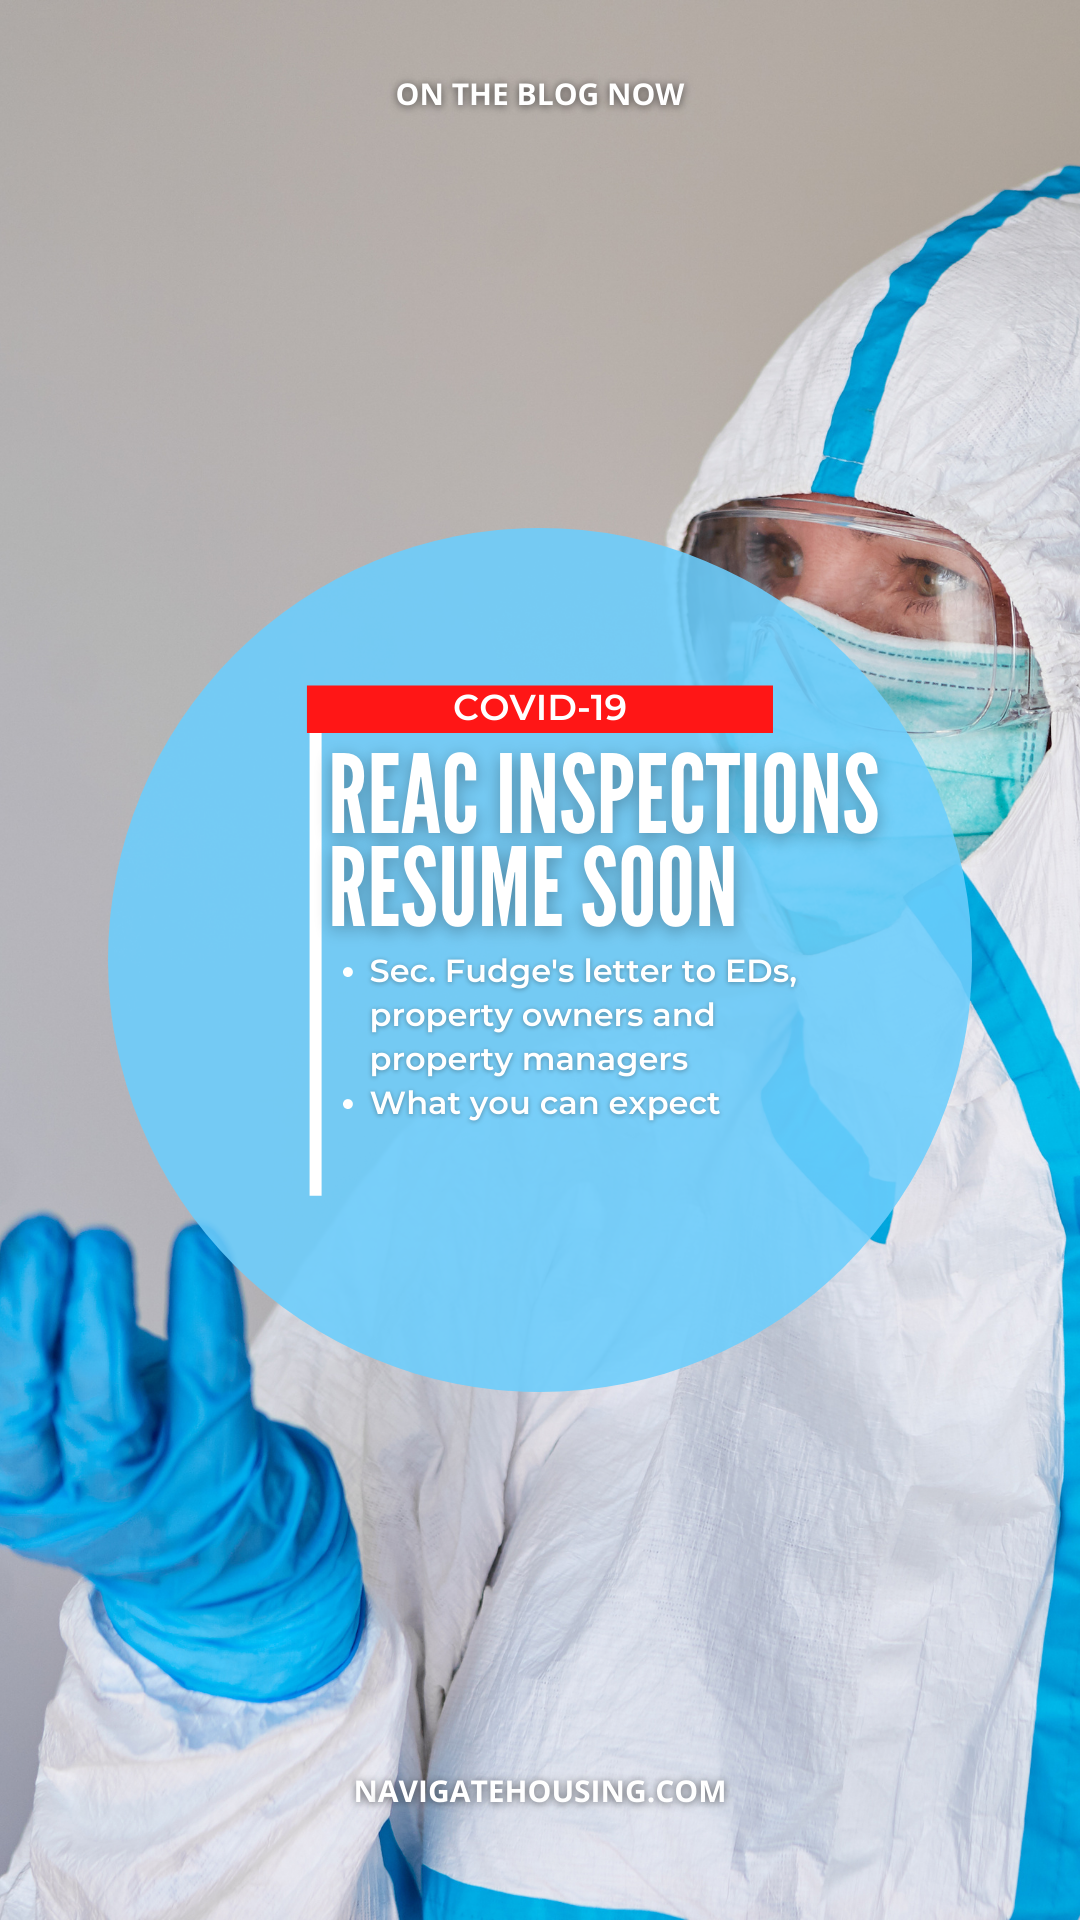 REAC inspections during the pandemic